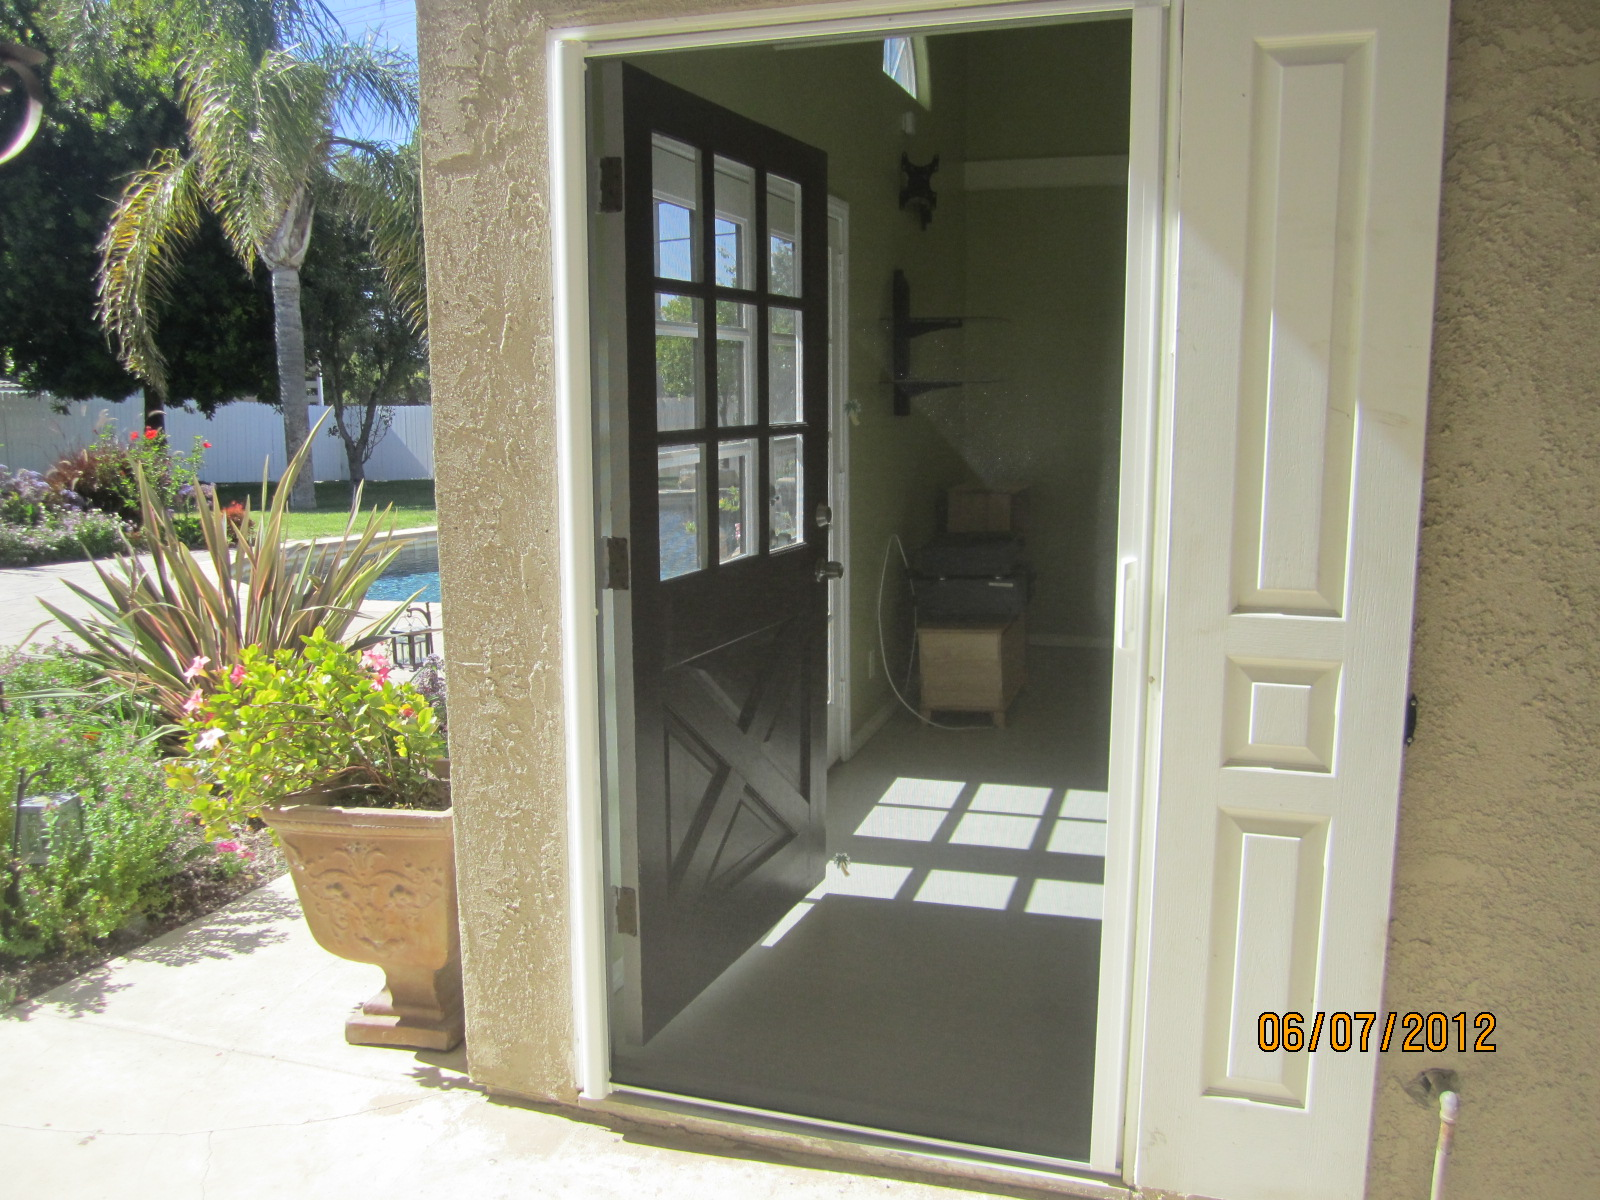 Amazing Exterior View Retracted Single Retractable Screen Door Sherman Oaks